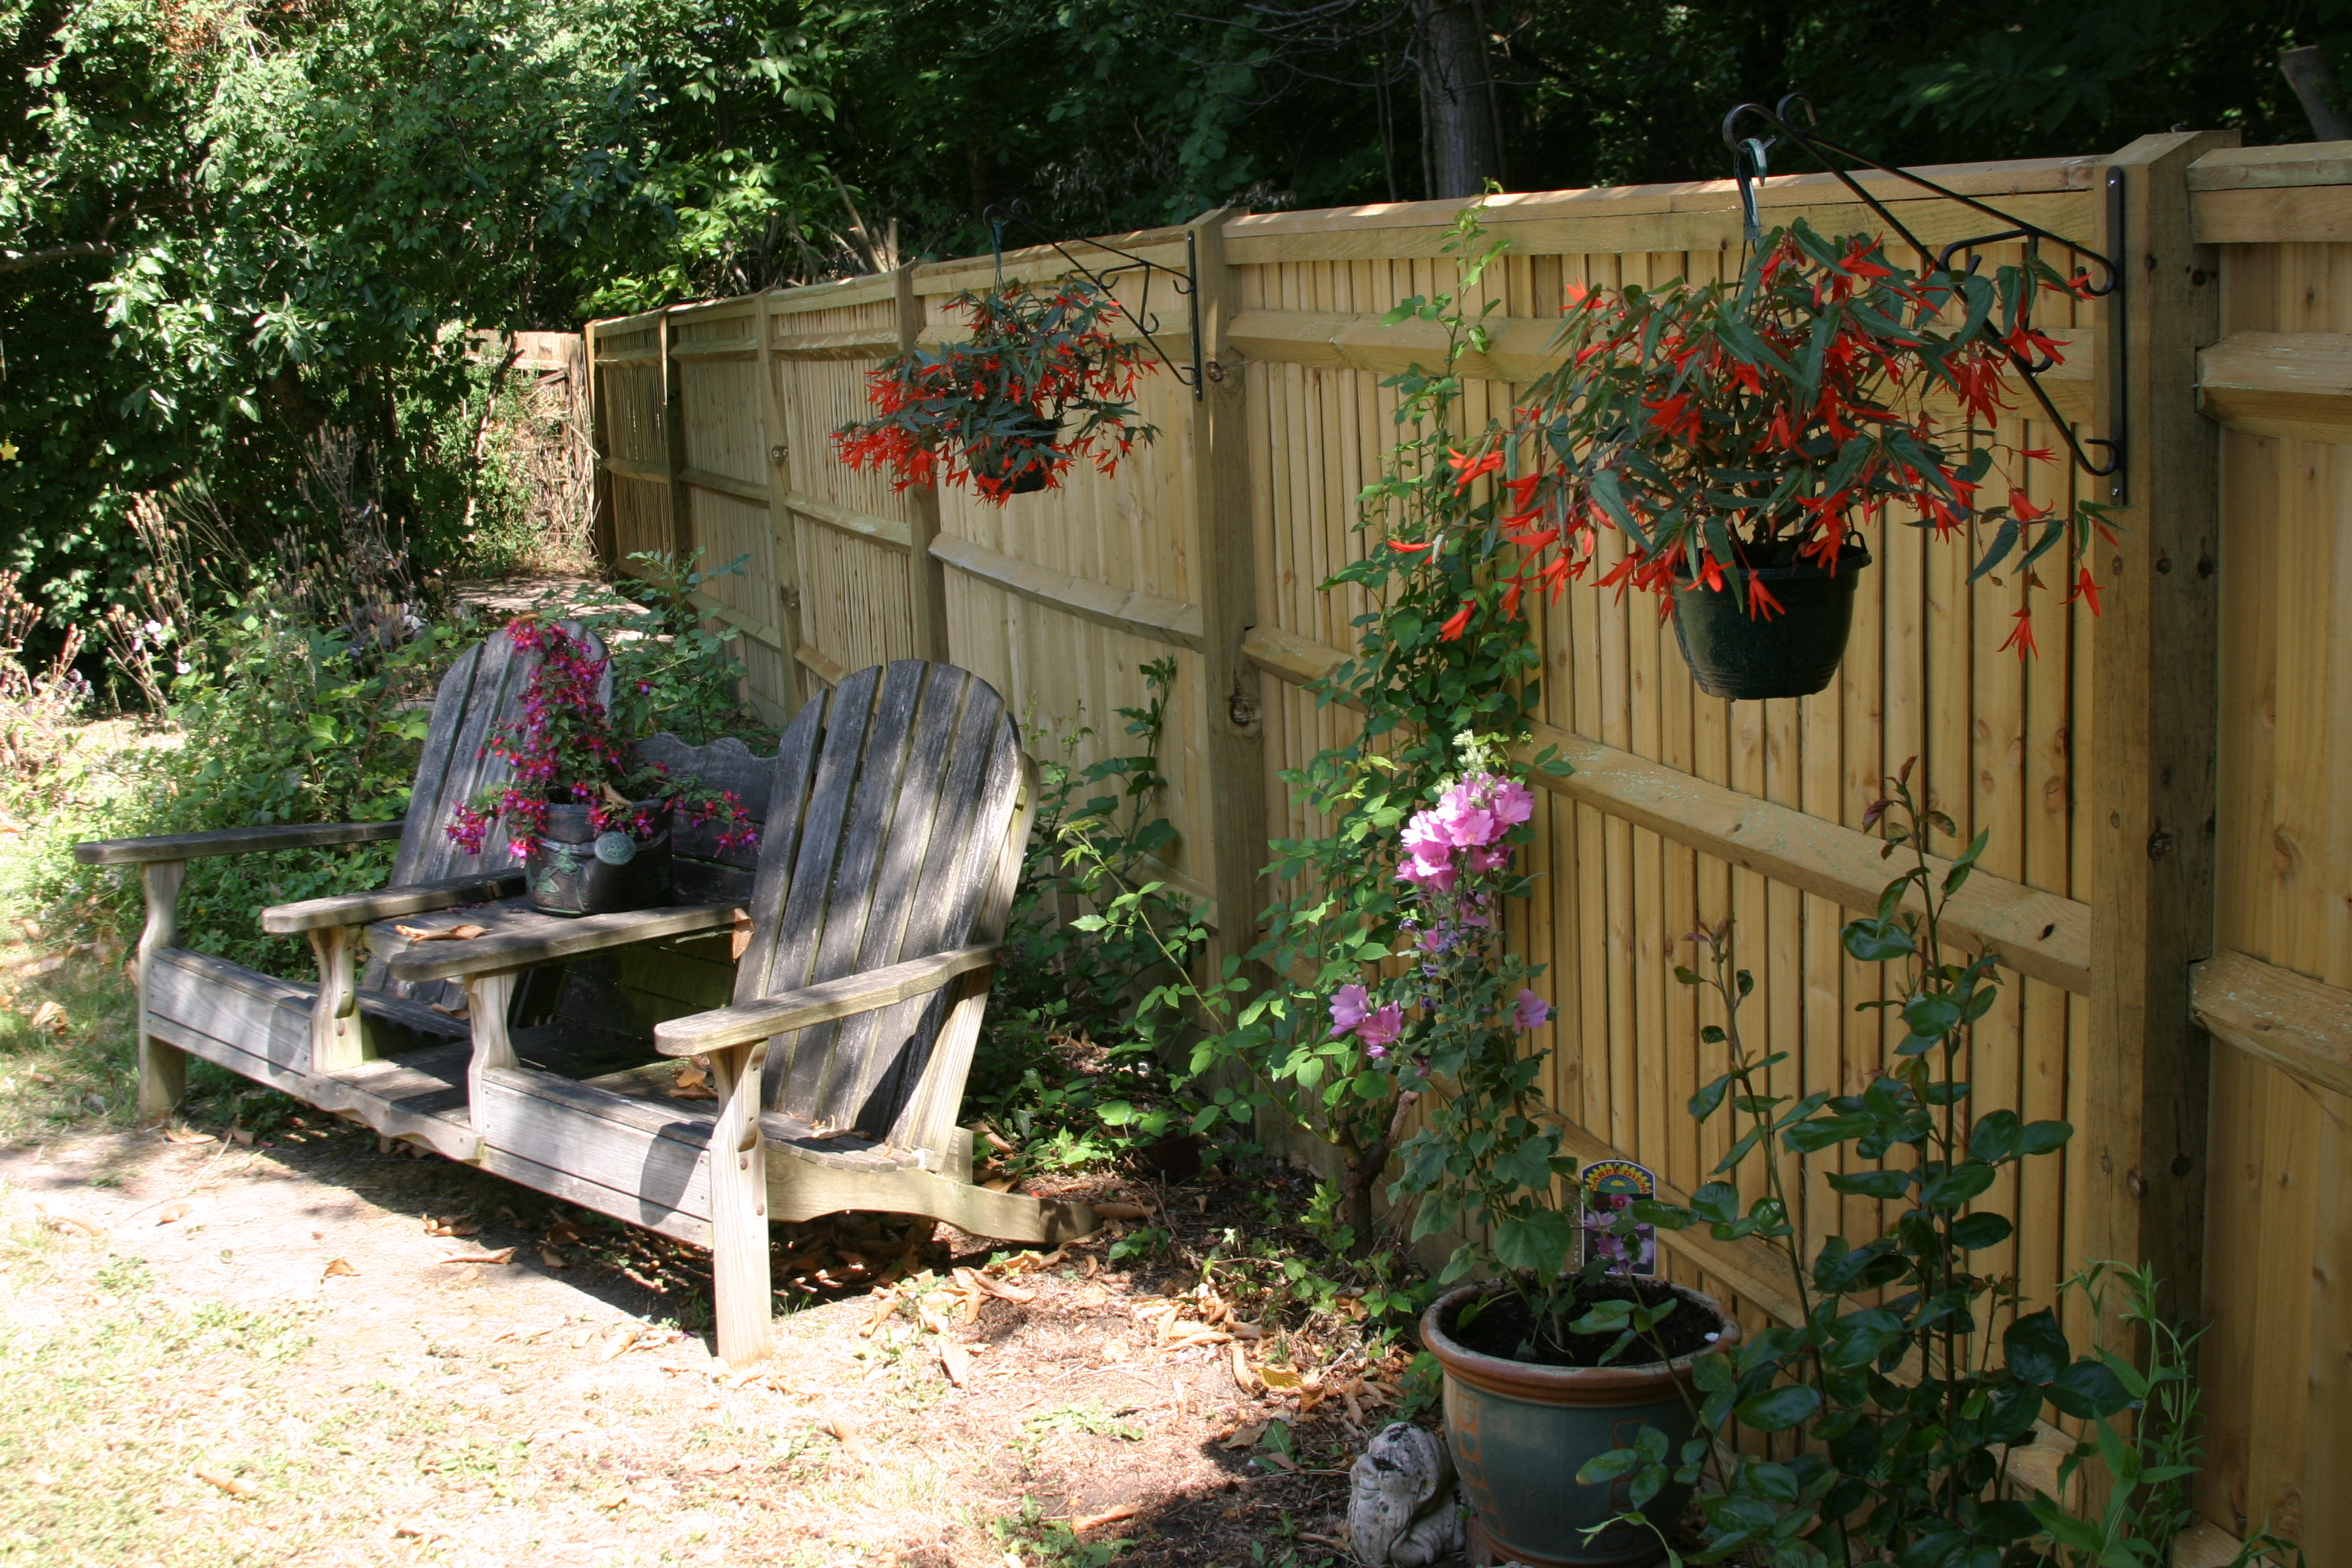 New fence, new plants. Getting our garden back.